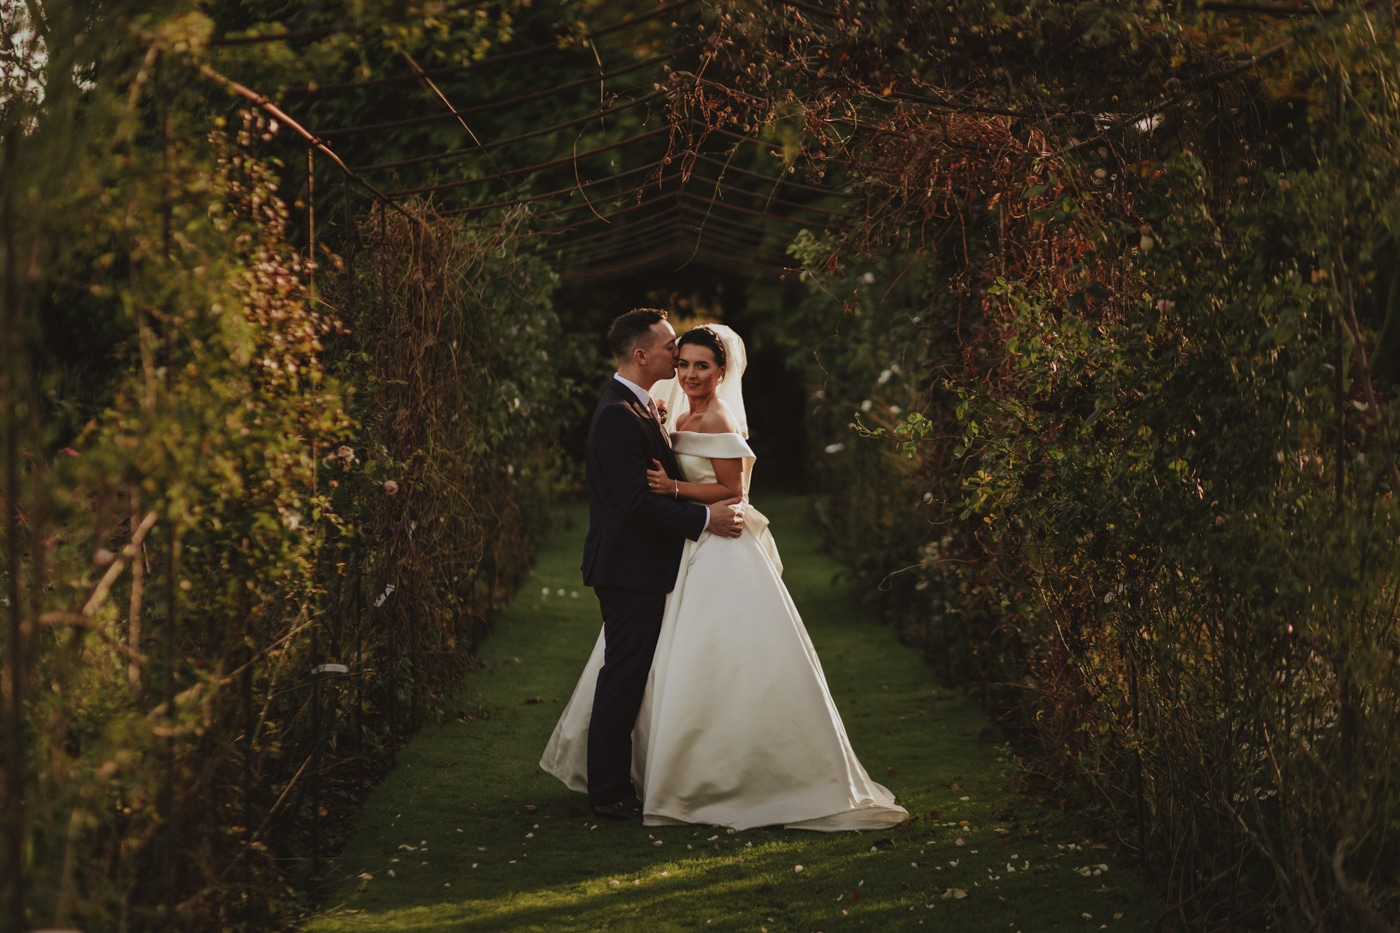 Lartington Hall Wedding Photograph bride and groom in lartington hall gardens